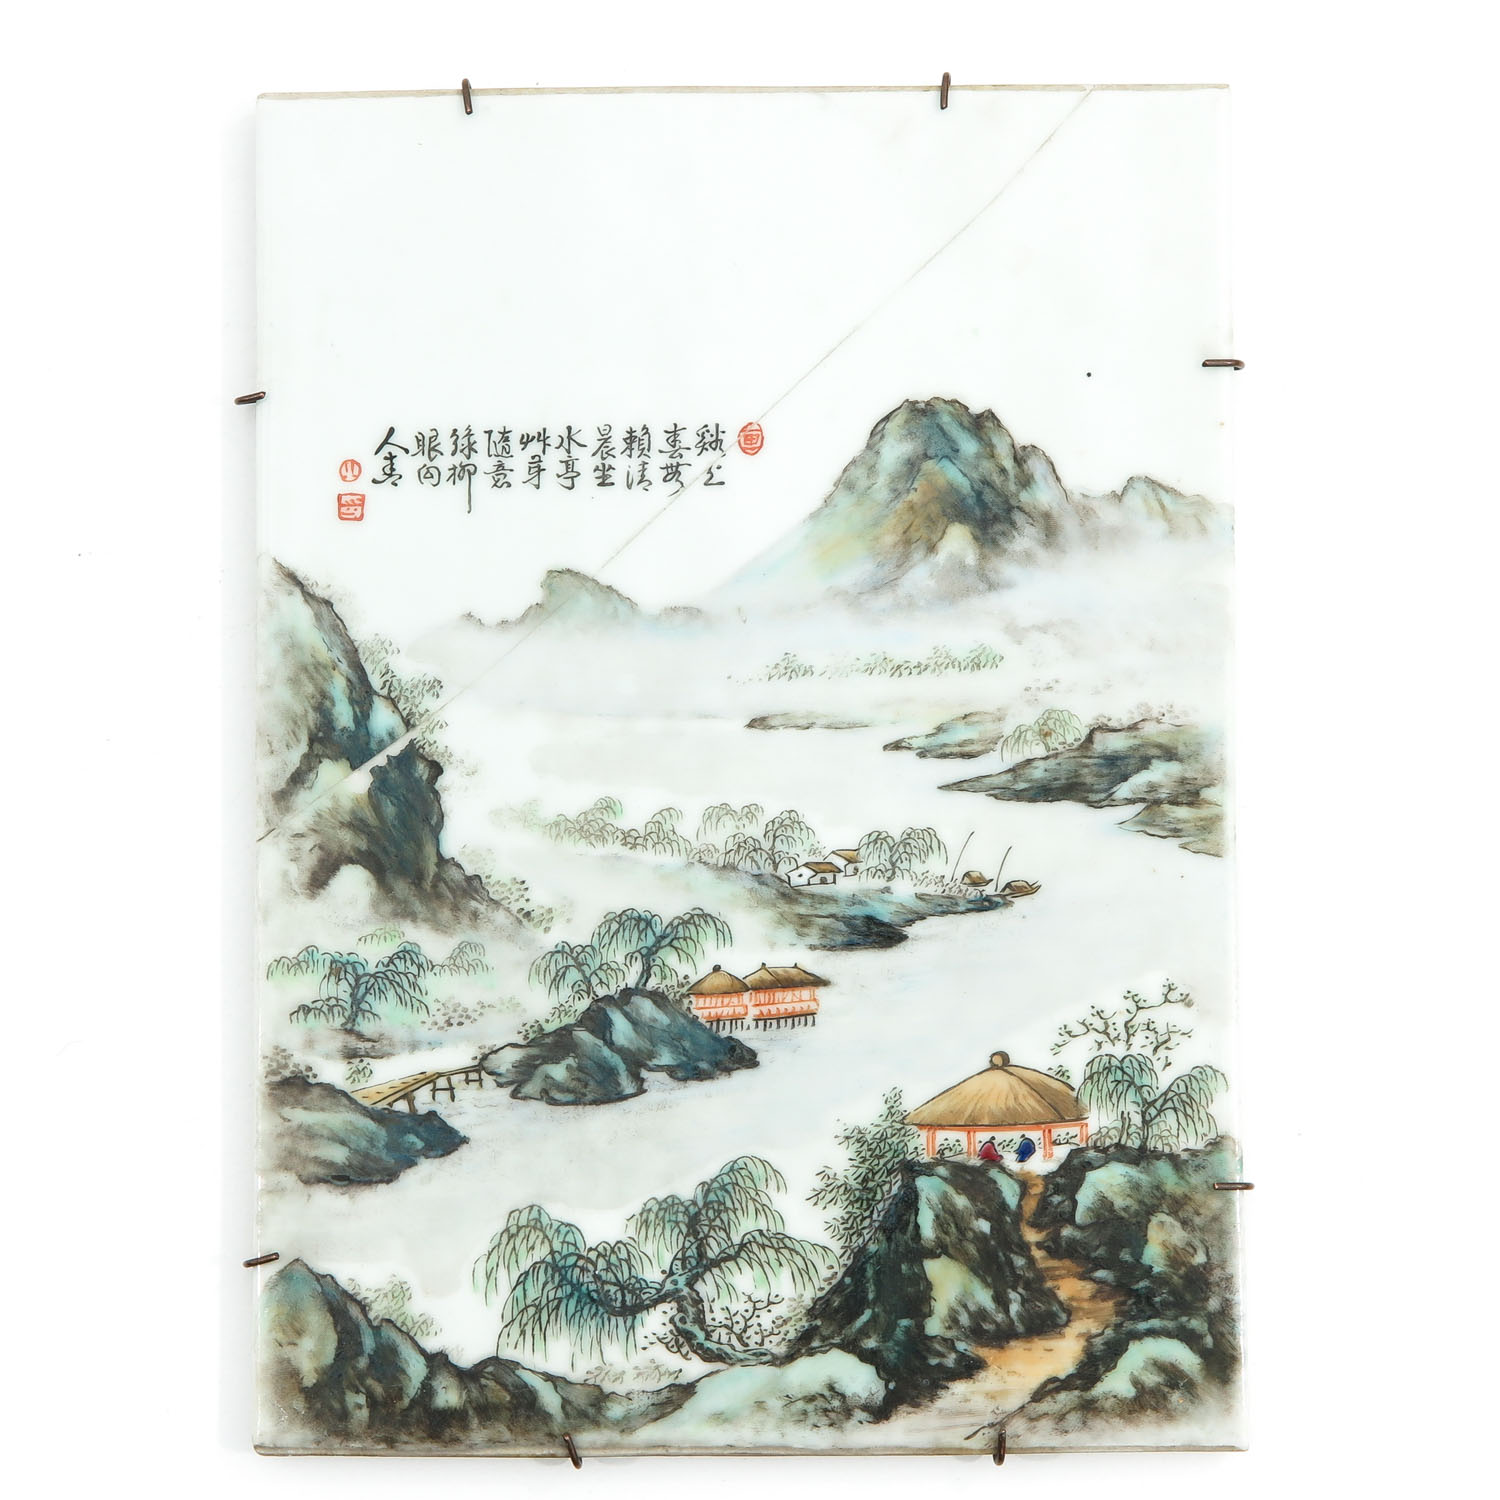 A Collection of 3 Chinese Tiles - Image 7 of 10